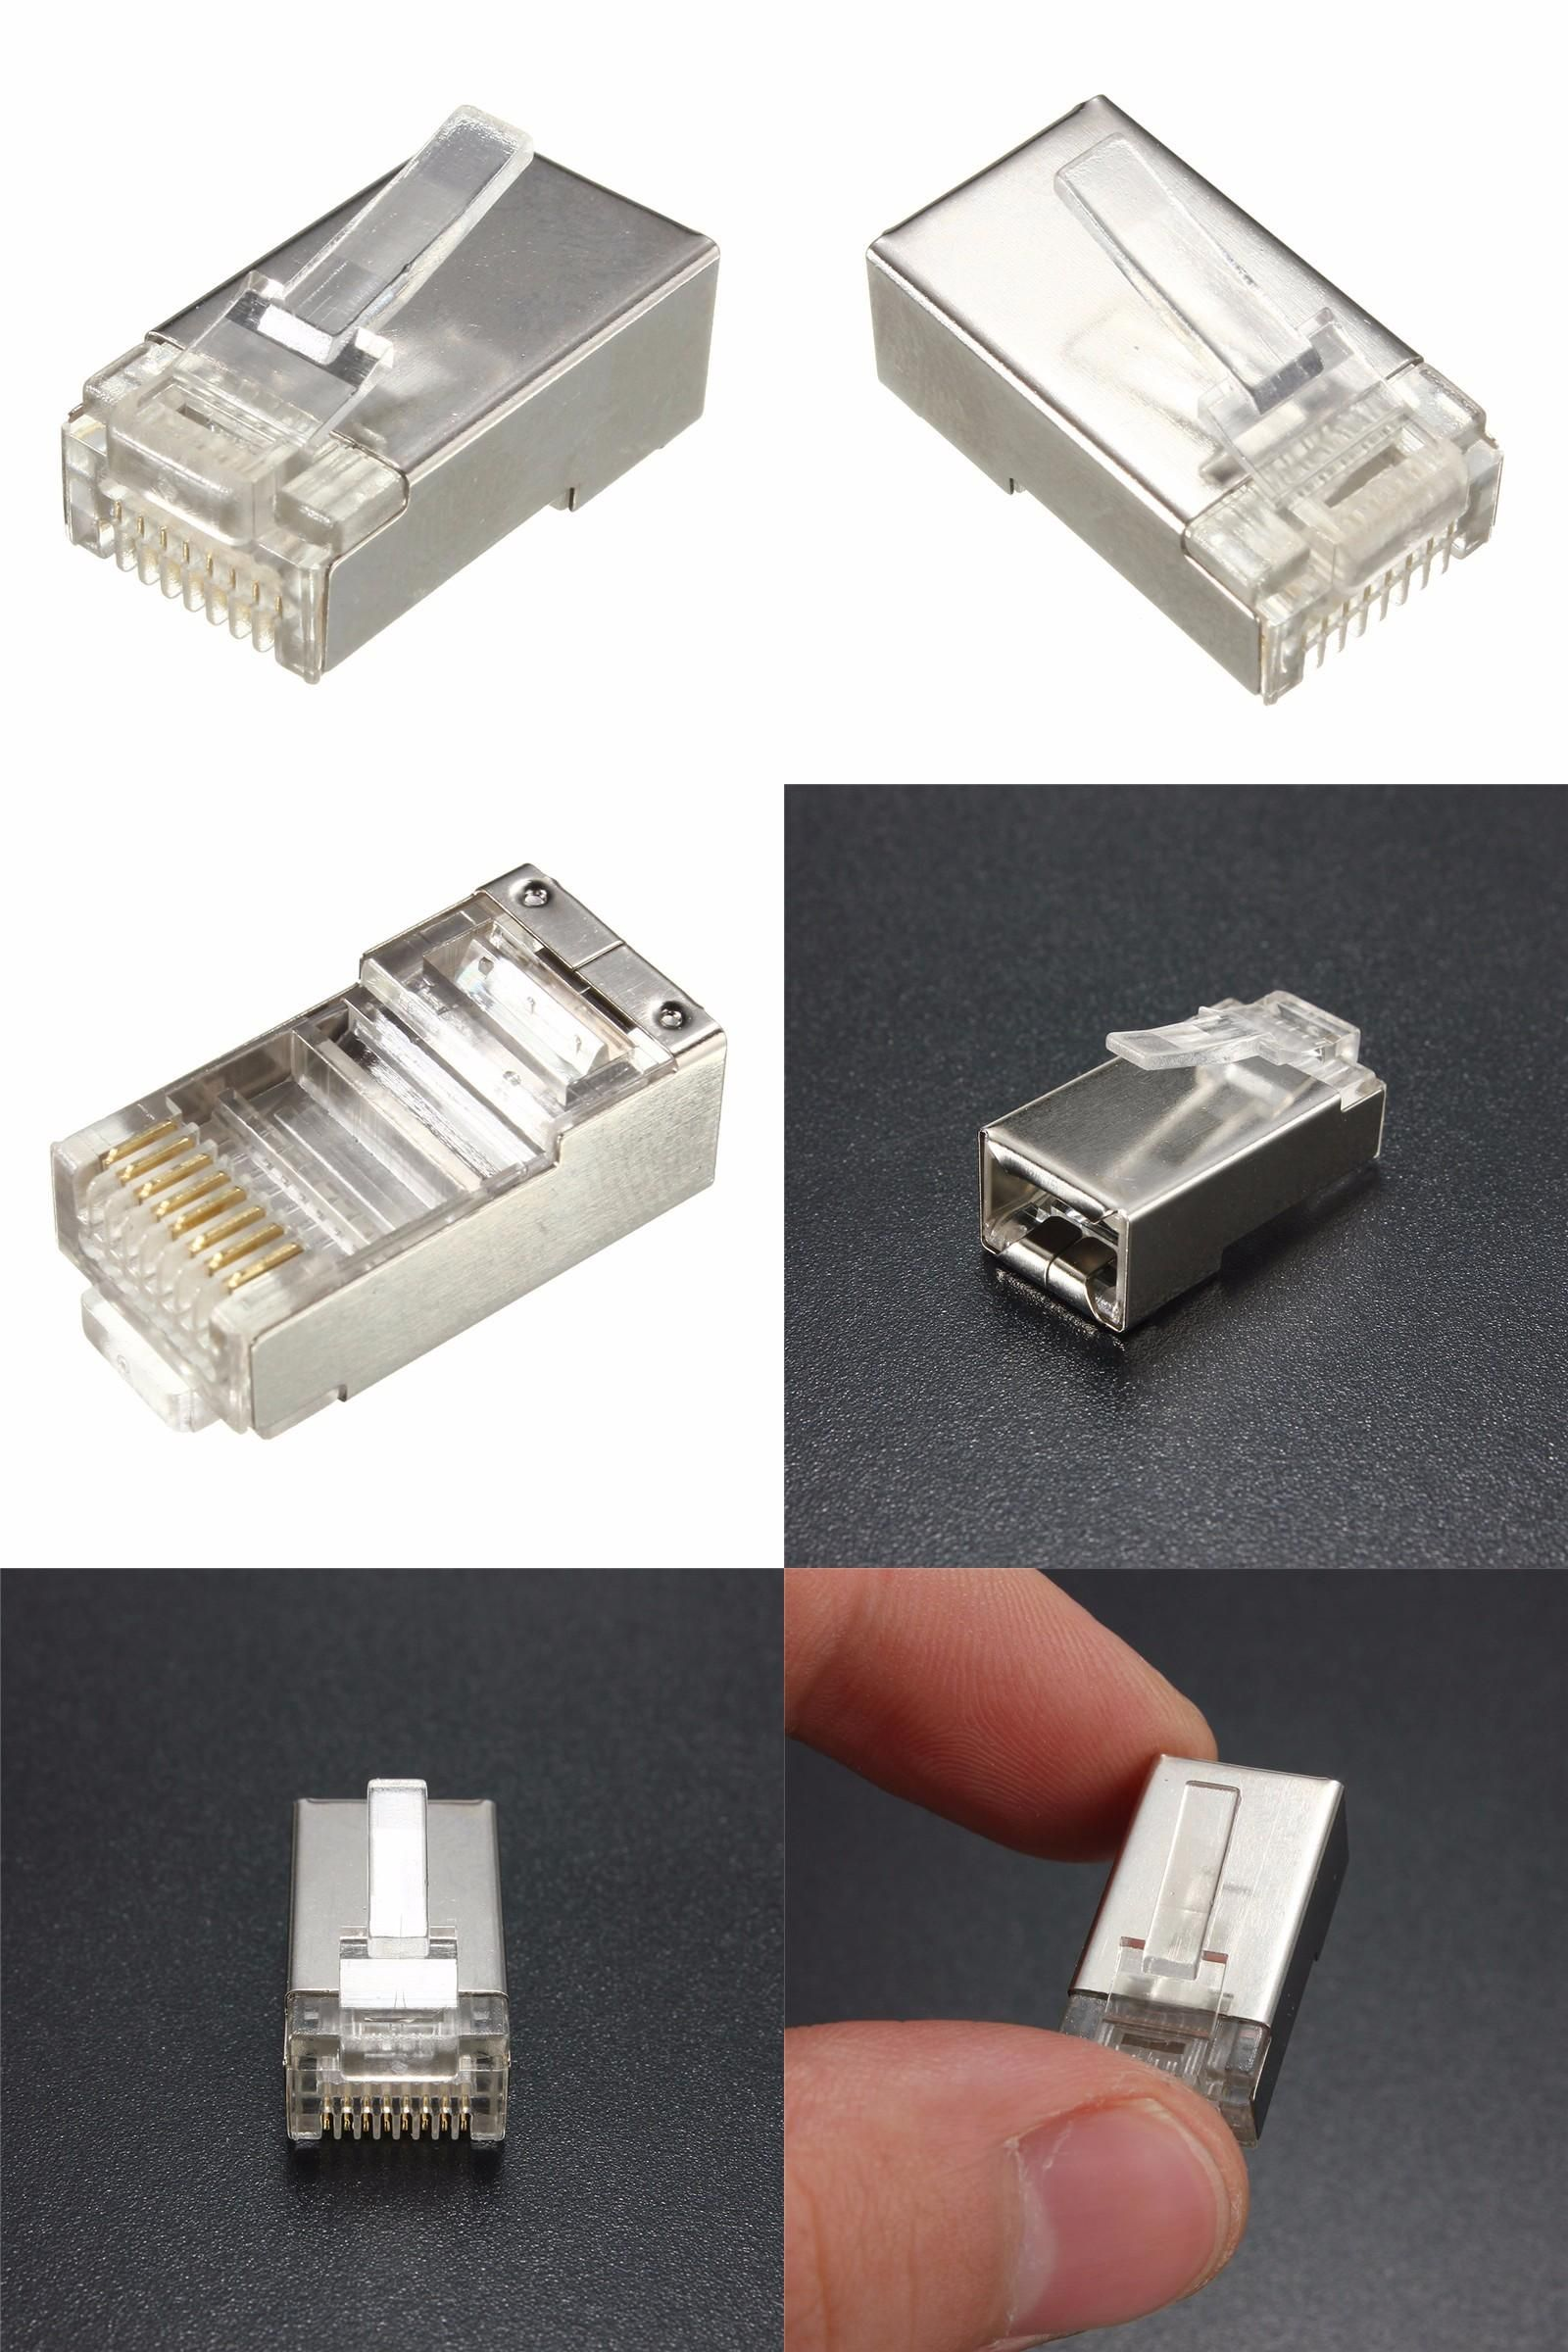 Visit to Buy] 5Pcs Crystal Head Network Cable Connector Metal Shield ...